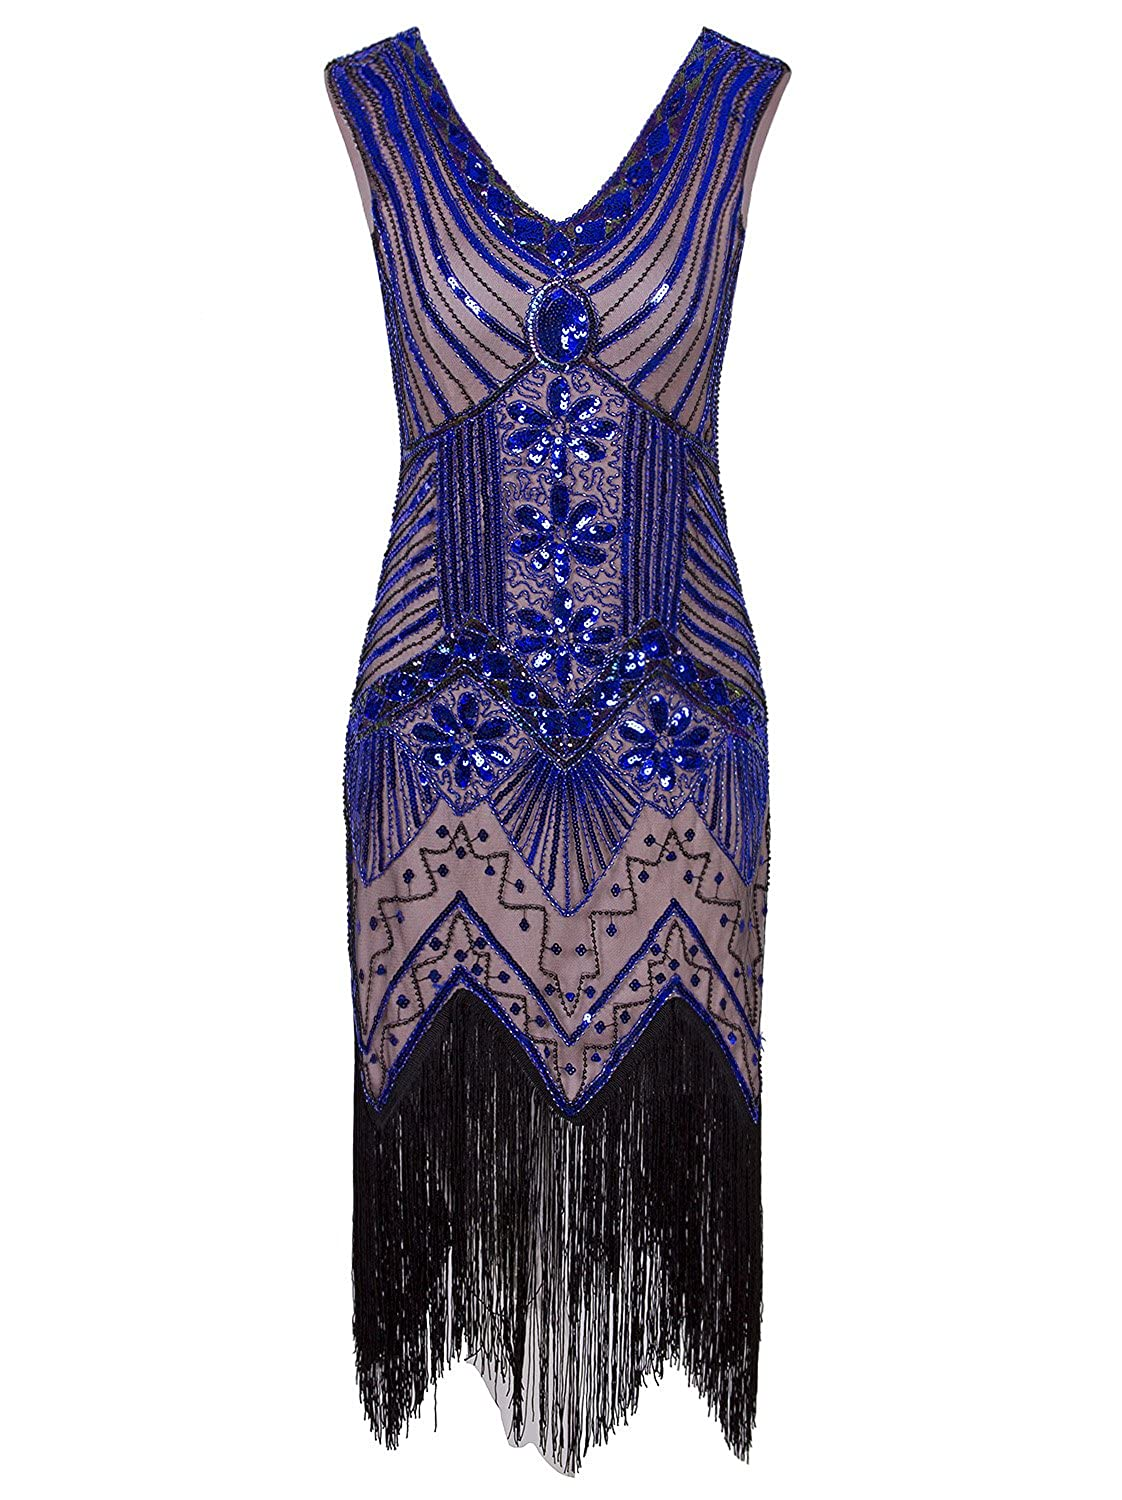 09fdd17fe8b2 A unique and exquisite beads and sequins embellished flapper dress, perfect  for Great Gatsby Parties, Weddings, Proms or any Special Occasion!